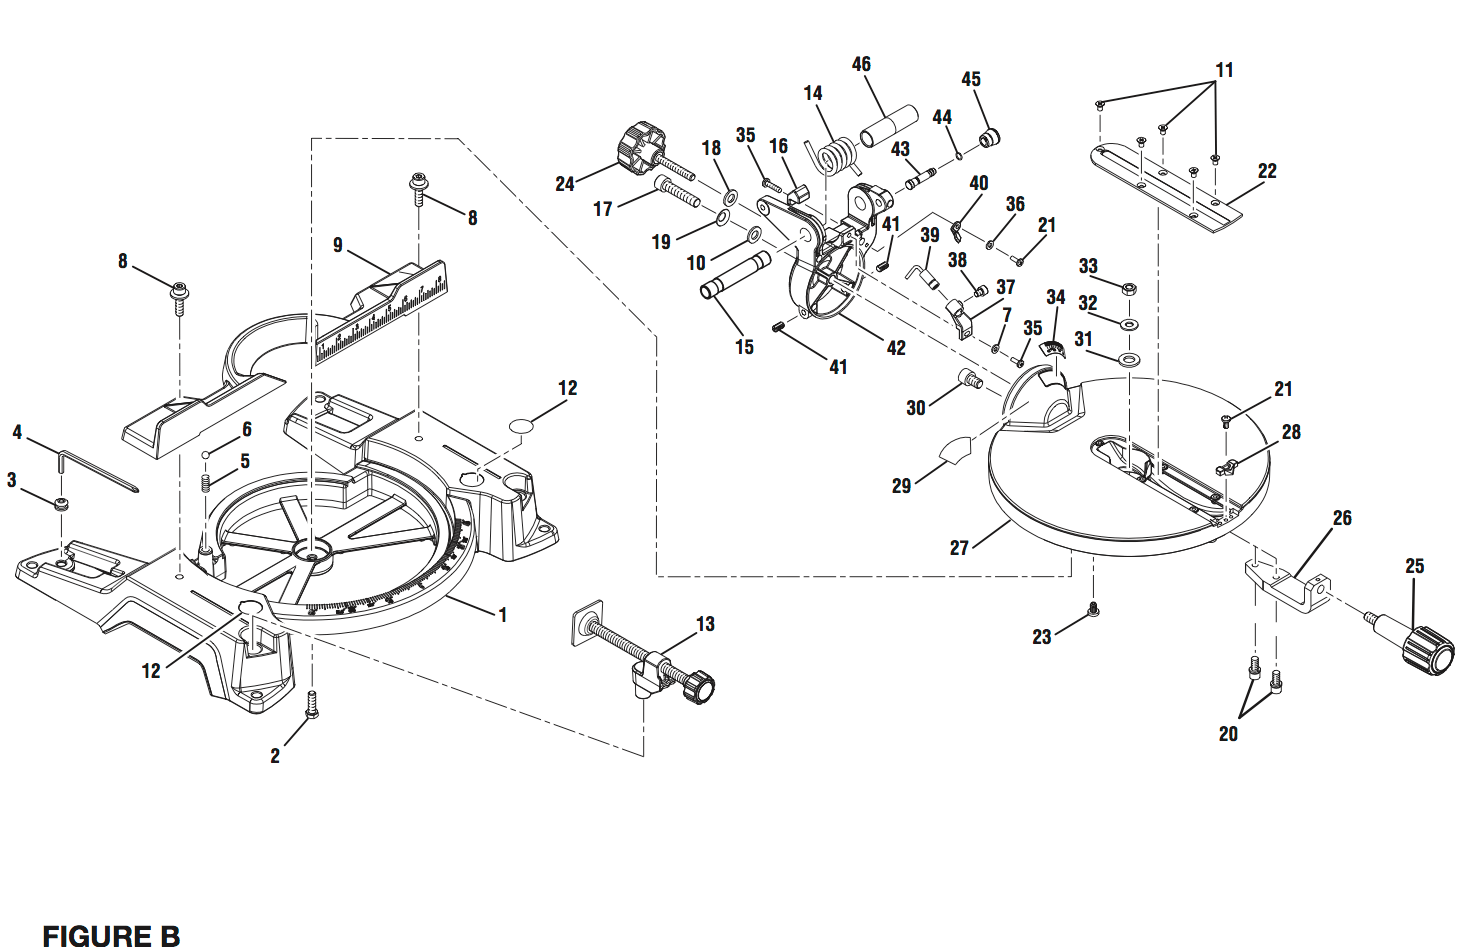 Ryobi Miter Saw Wiring Diagram : 30 Wiring Diagram Images